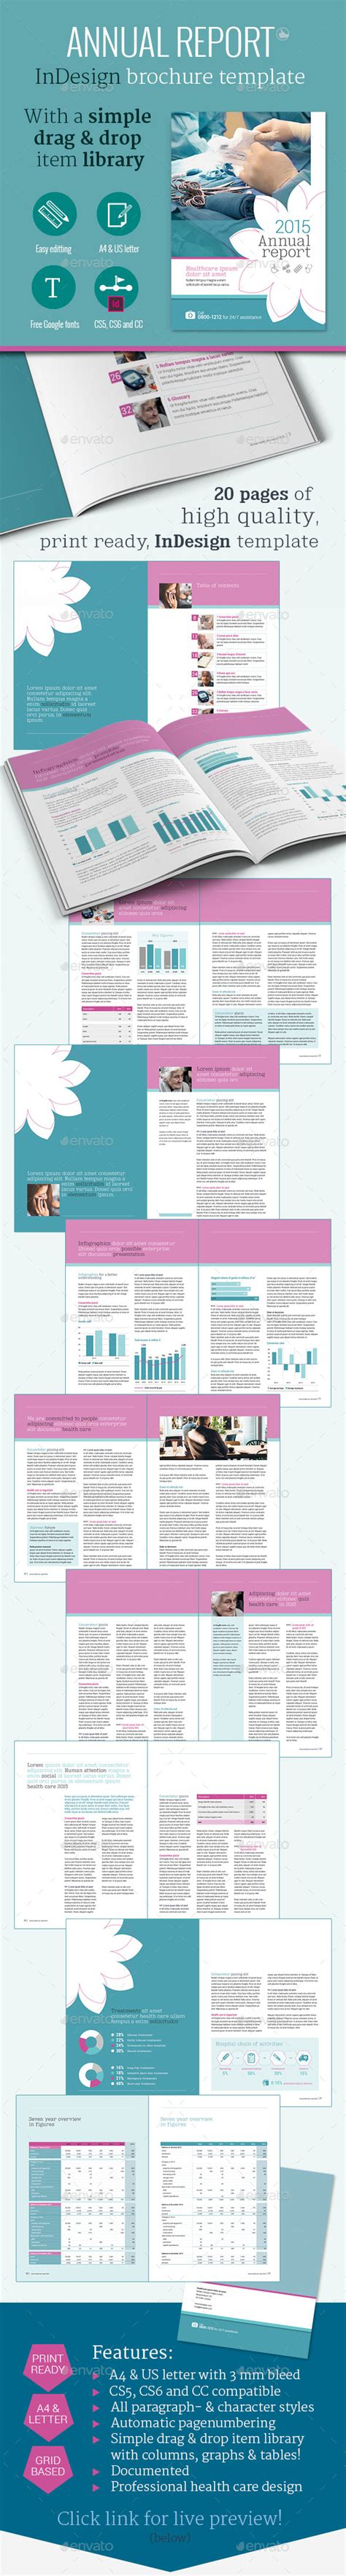 health care annual report brochure template by